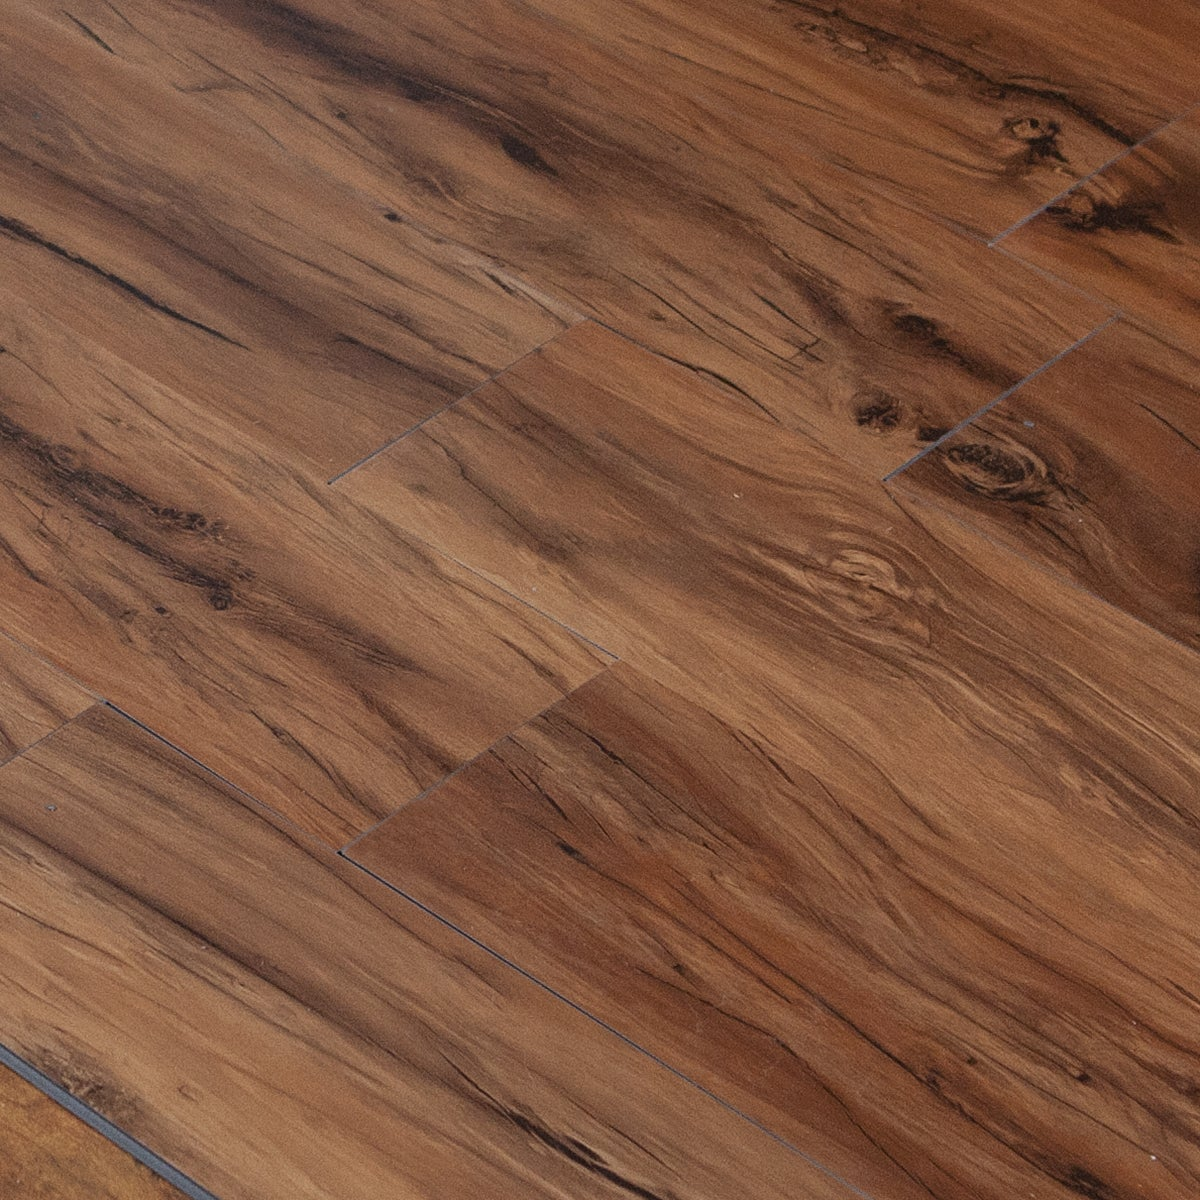 Toasted Oak 4mm 26.53 sq. ft. Embossed Vinyl Plank Floori...